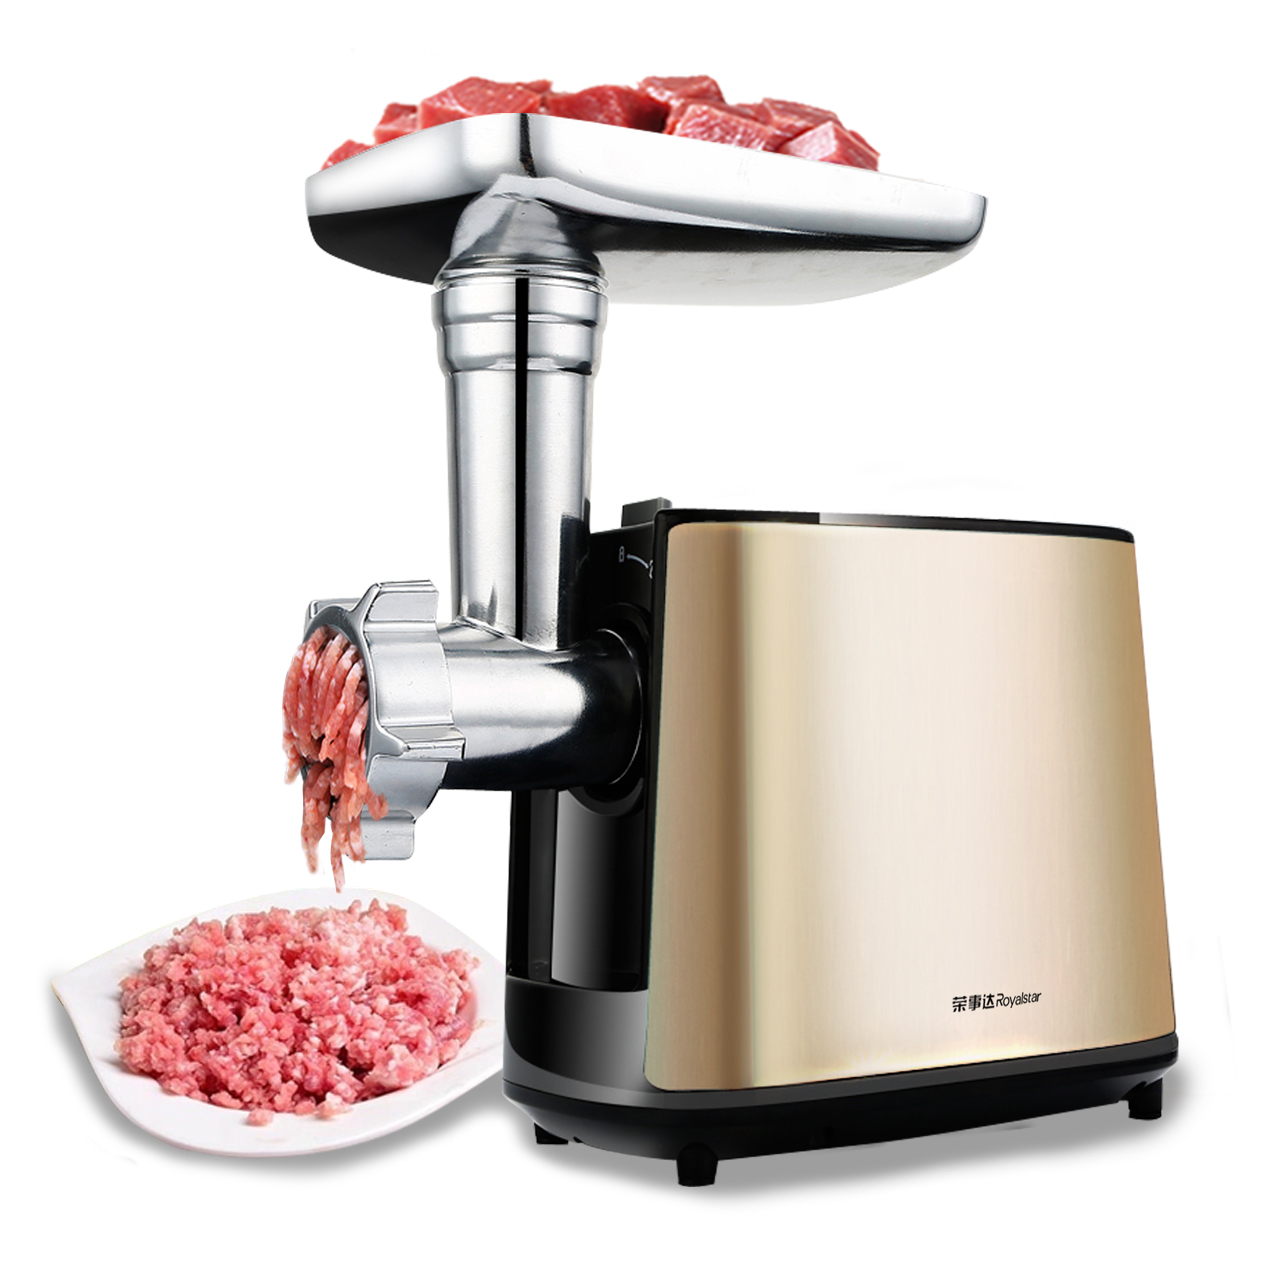 Household appliances electric Meat grinder stainless steel Meat grinder Fully automatic Broken vegetables Ground meat multi function electric stainless steel household commercial food meat grinder 220v